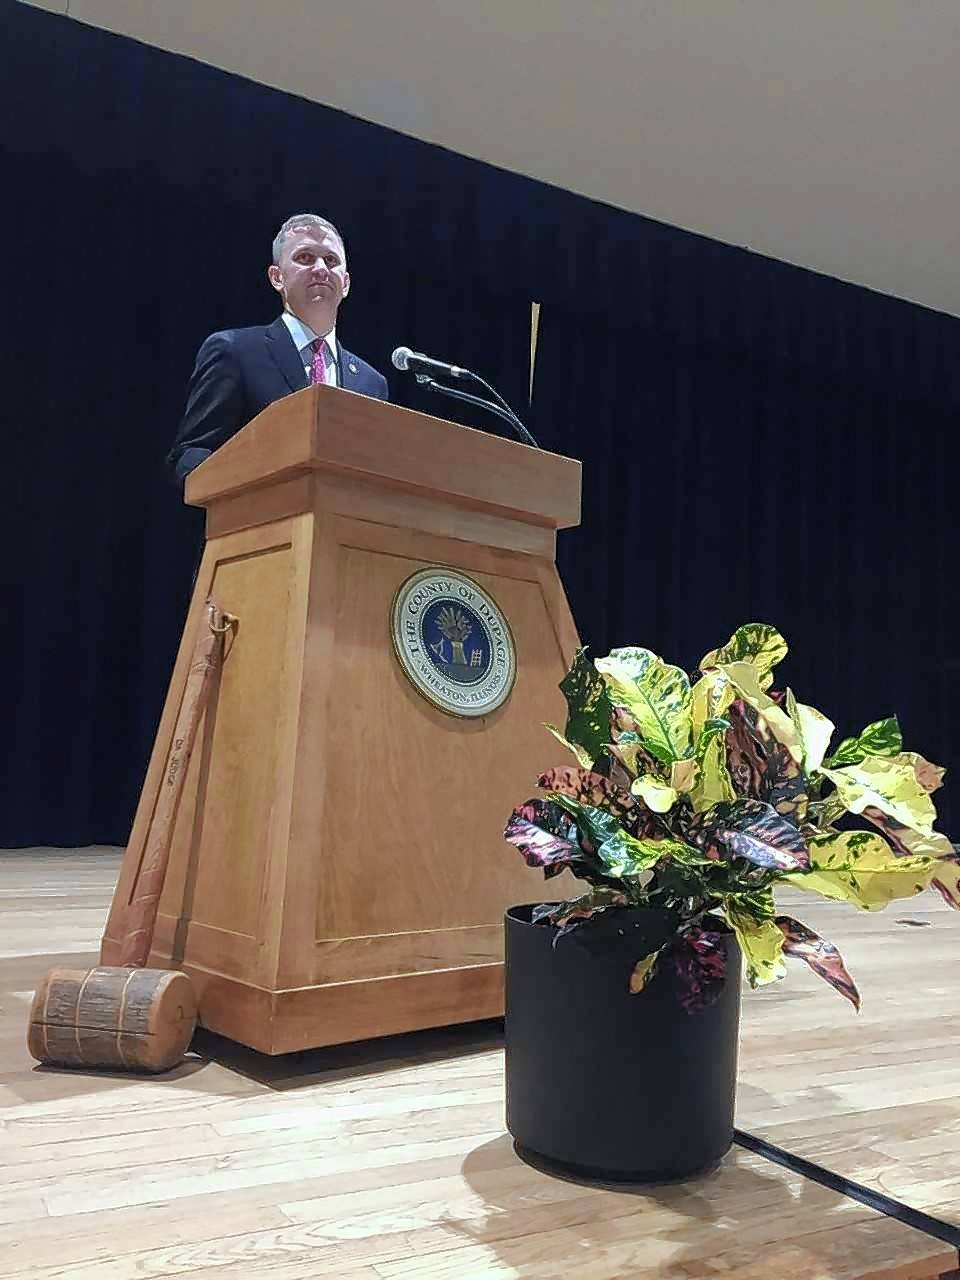 Freshman U.S. Rep. Sean Casten of Downers Grove, a Democrat representing the 6th District, speaks Saturday in Wheaton about the freedom and equality guaranteed in the Constitution after taking his oath of office before a local audience.